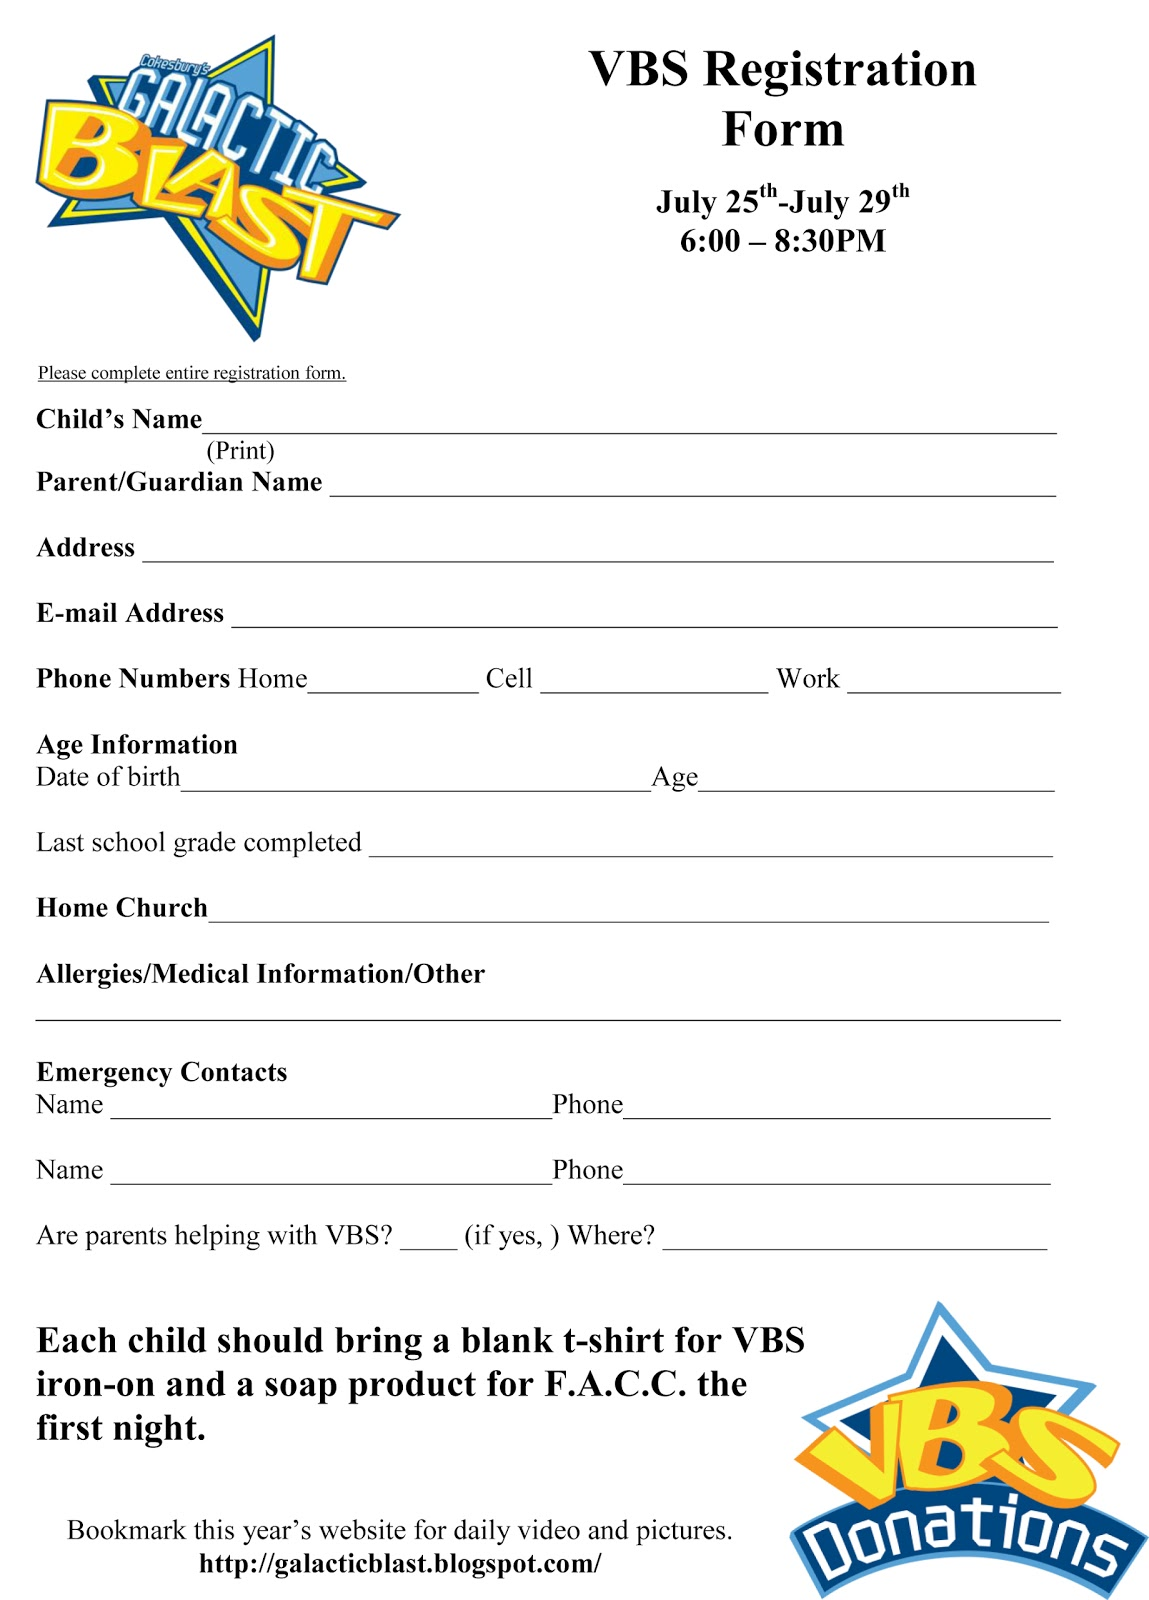 shake it up cafe vbs  registration form